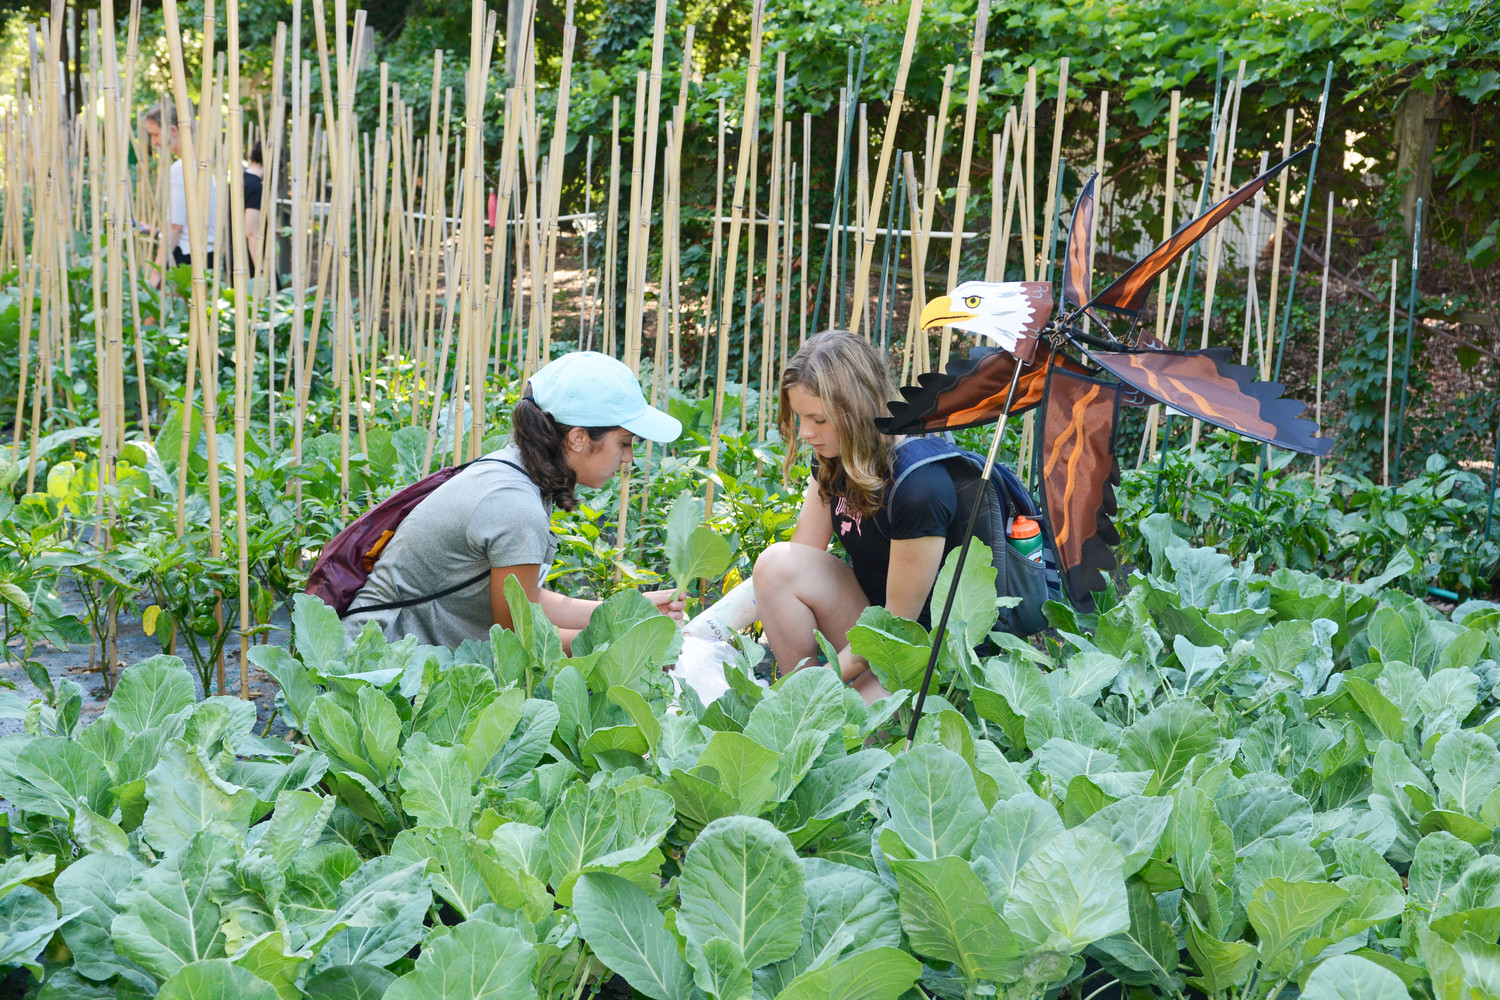 Domenica Voli, left, and Maille Sherry pick collard greens from the Food for Others Garden in the Wakefield section of the Bronx July 10. Fifteen students from The Ursuline School in New Rochelle volunteered to harvest the garden of collard greens, basil and jalapeno peppers.